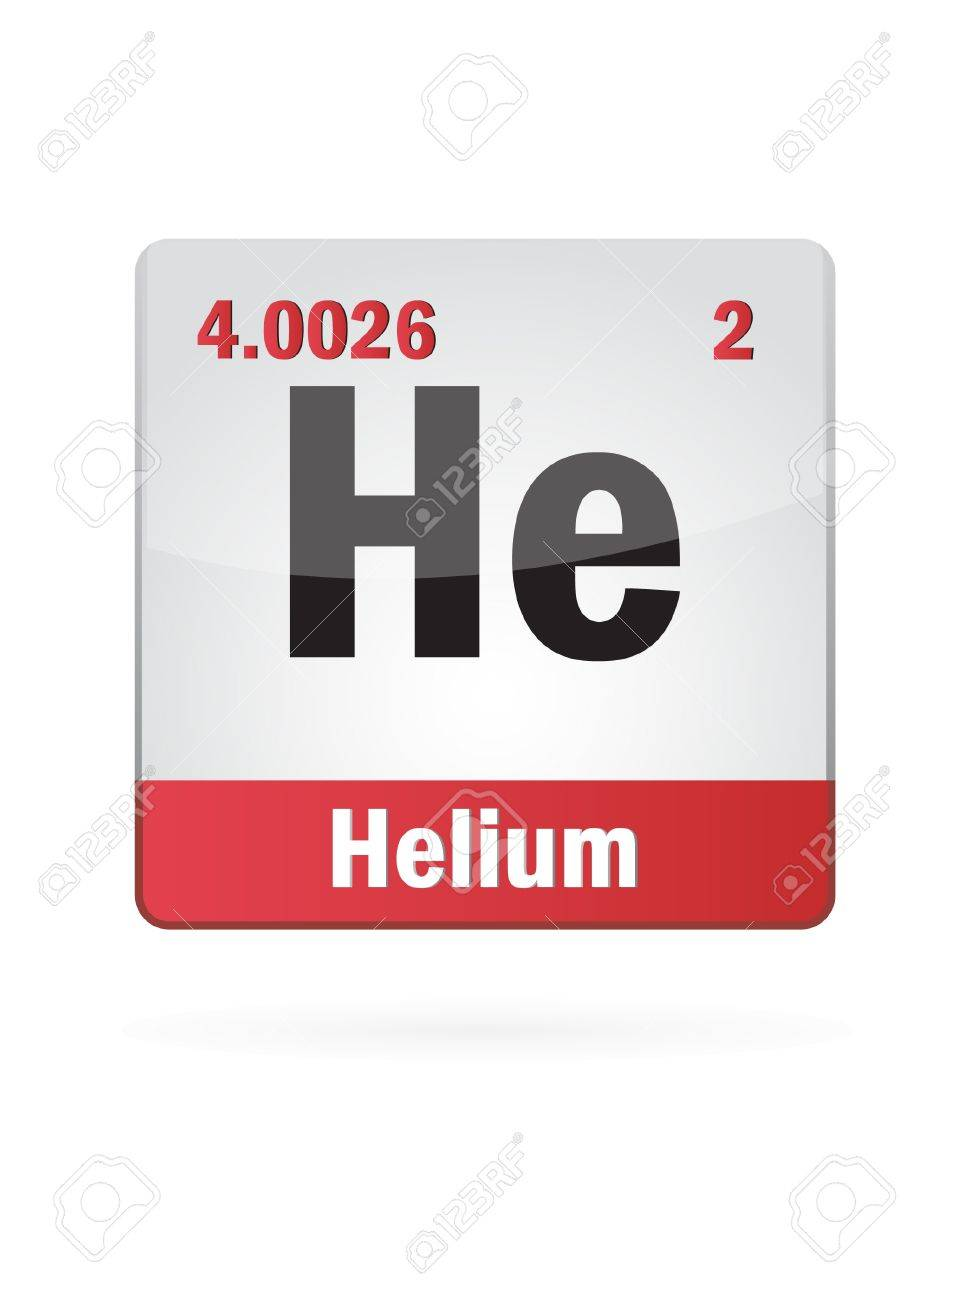 Helium symbol on periodic table images periodic table images helium on periodic table choice image periodic table images helium symbol illustration icon on white background gamestrikefo Images